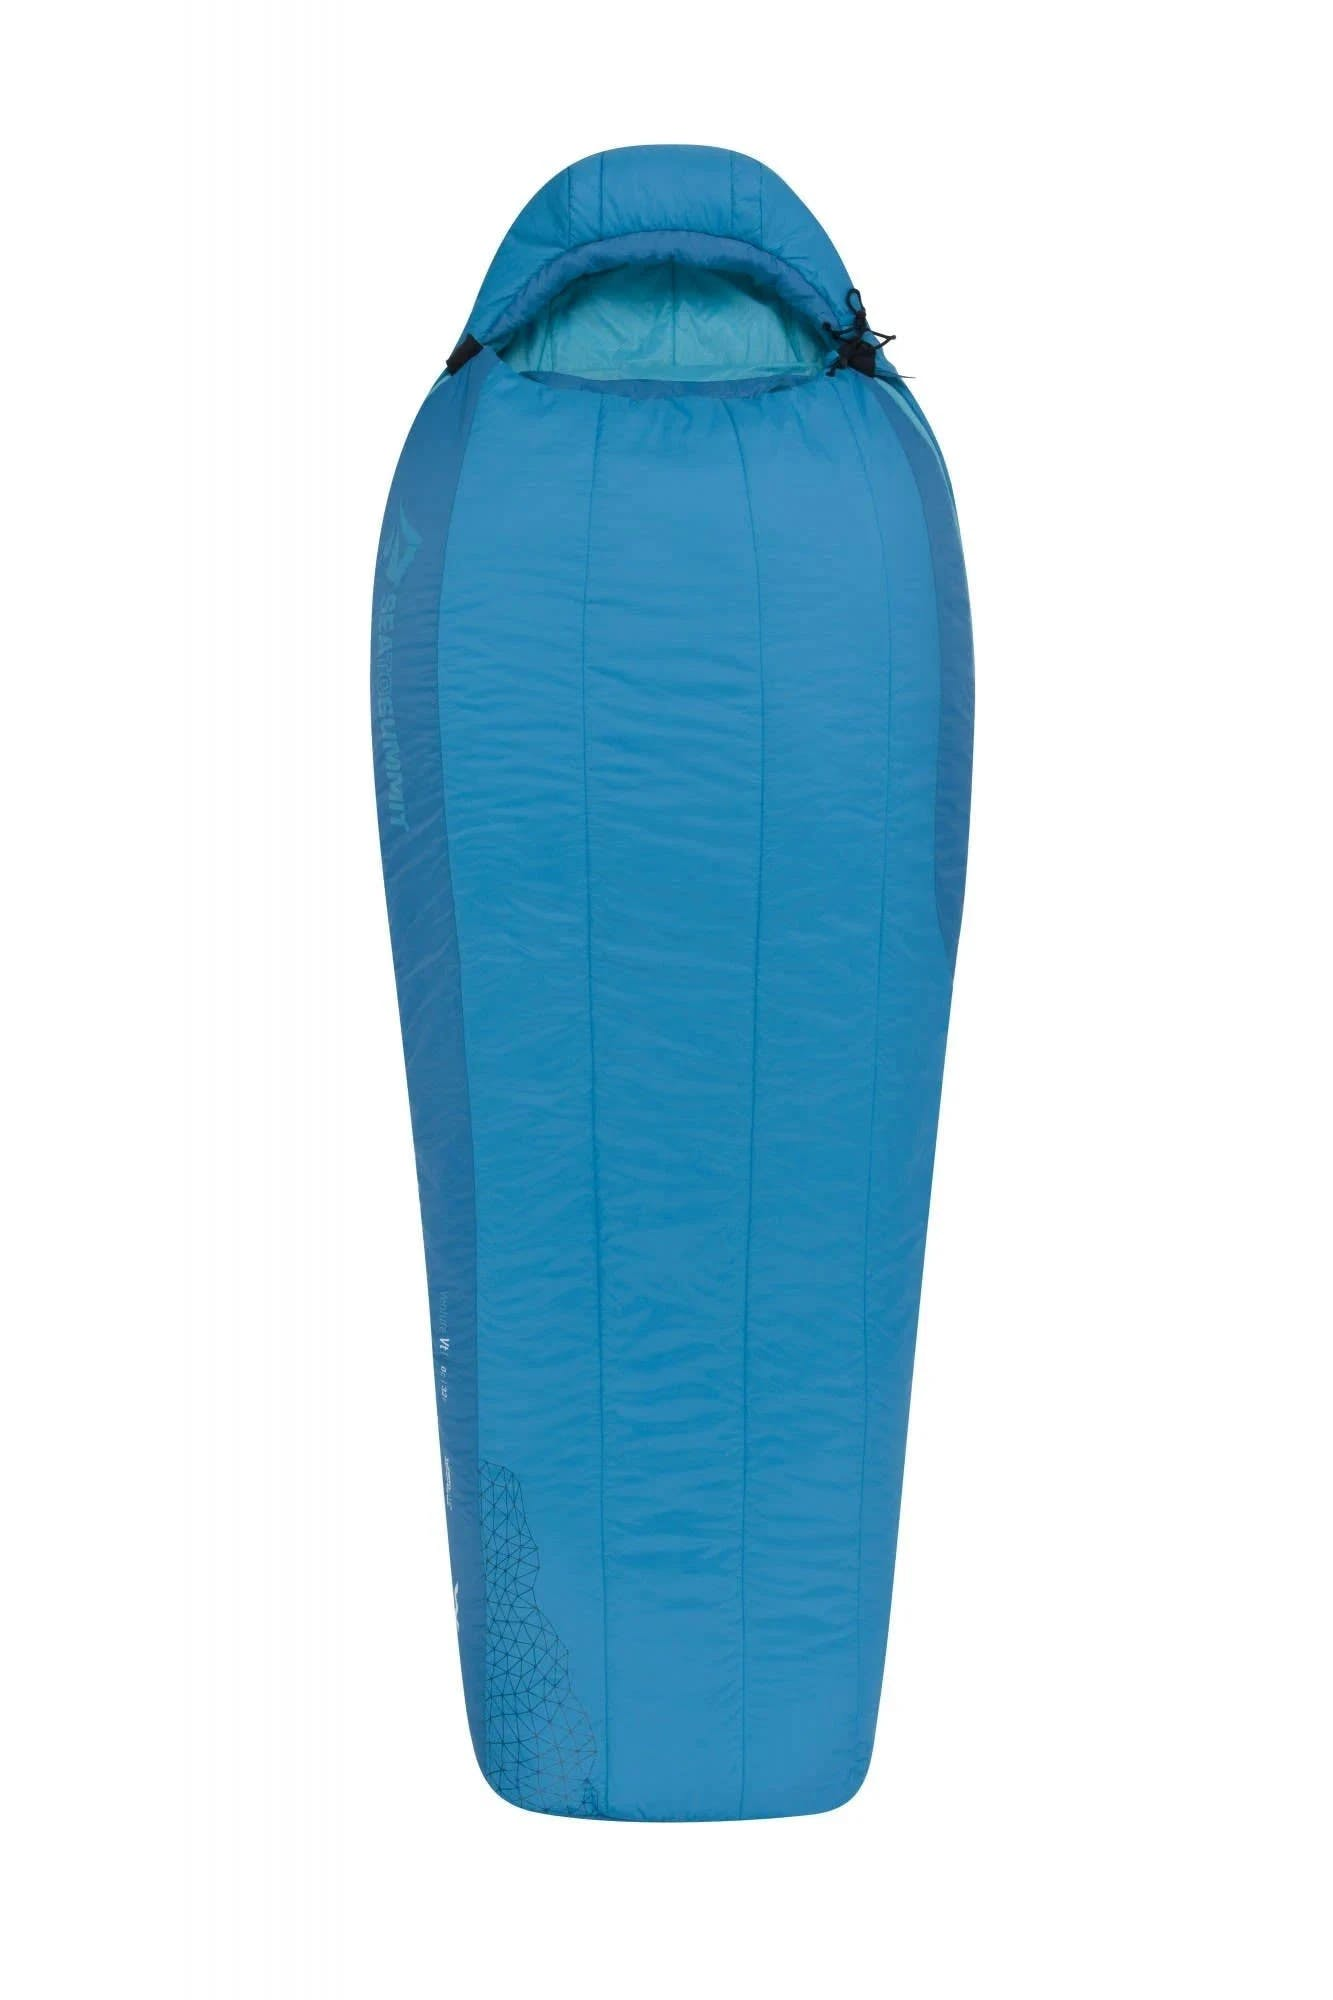 Sea to Summit Venture 32F Sleeping Bag - Women's Blue Long S5112